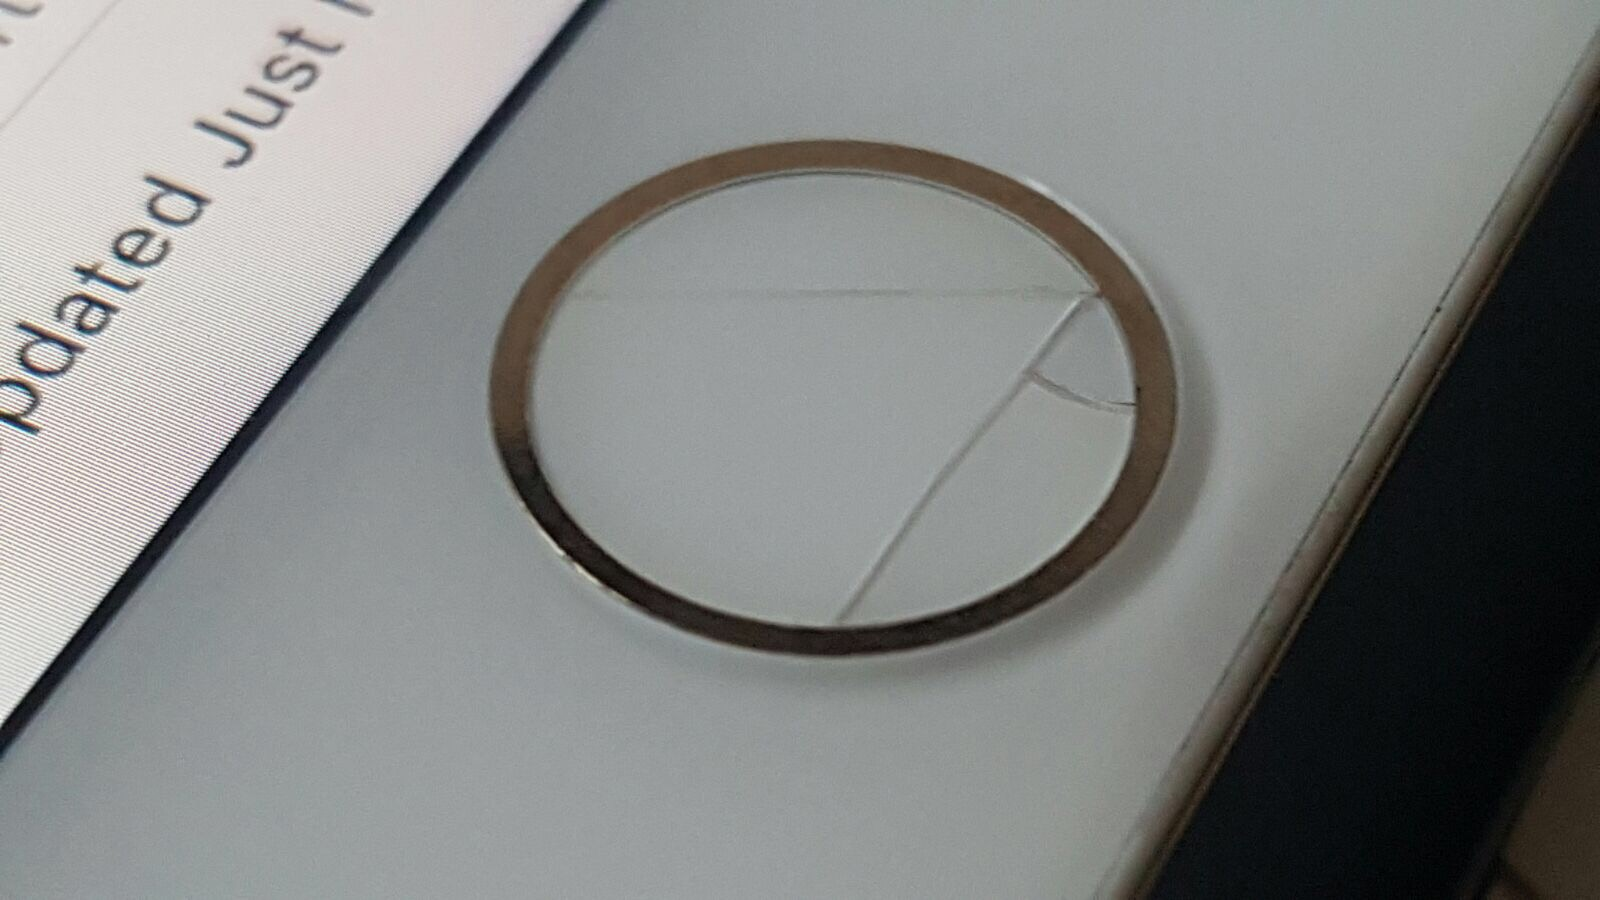 online store 69817 f874f iphone 7 cracked home button - Apple Community